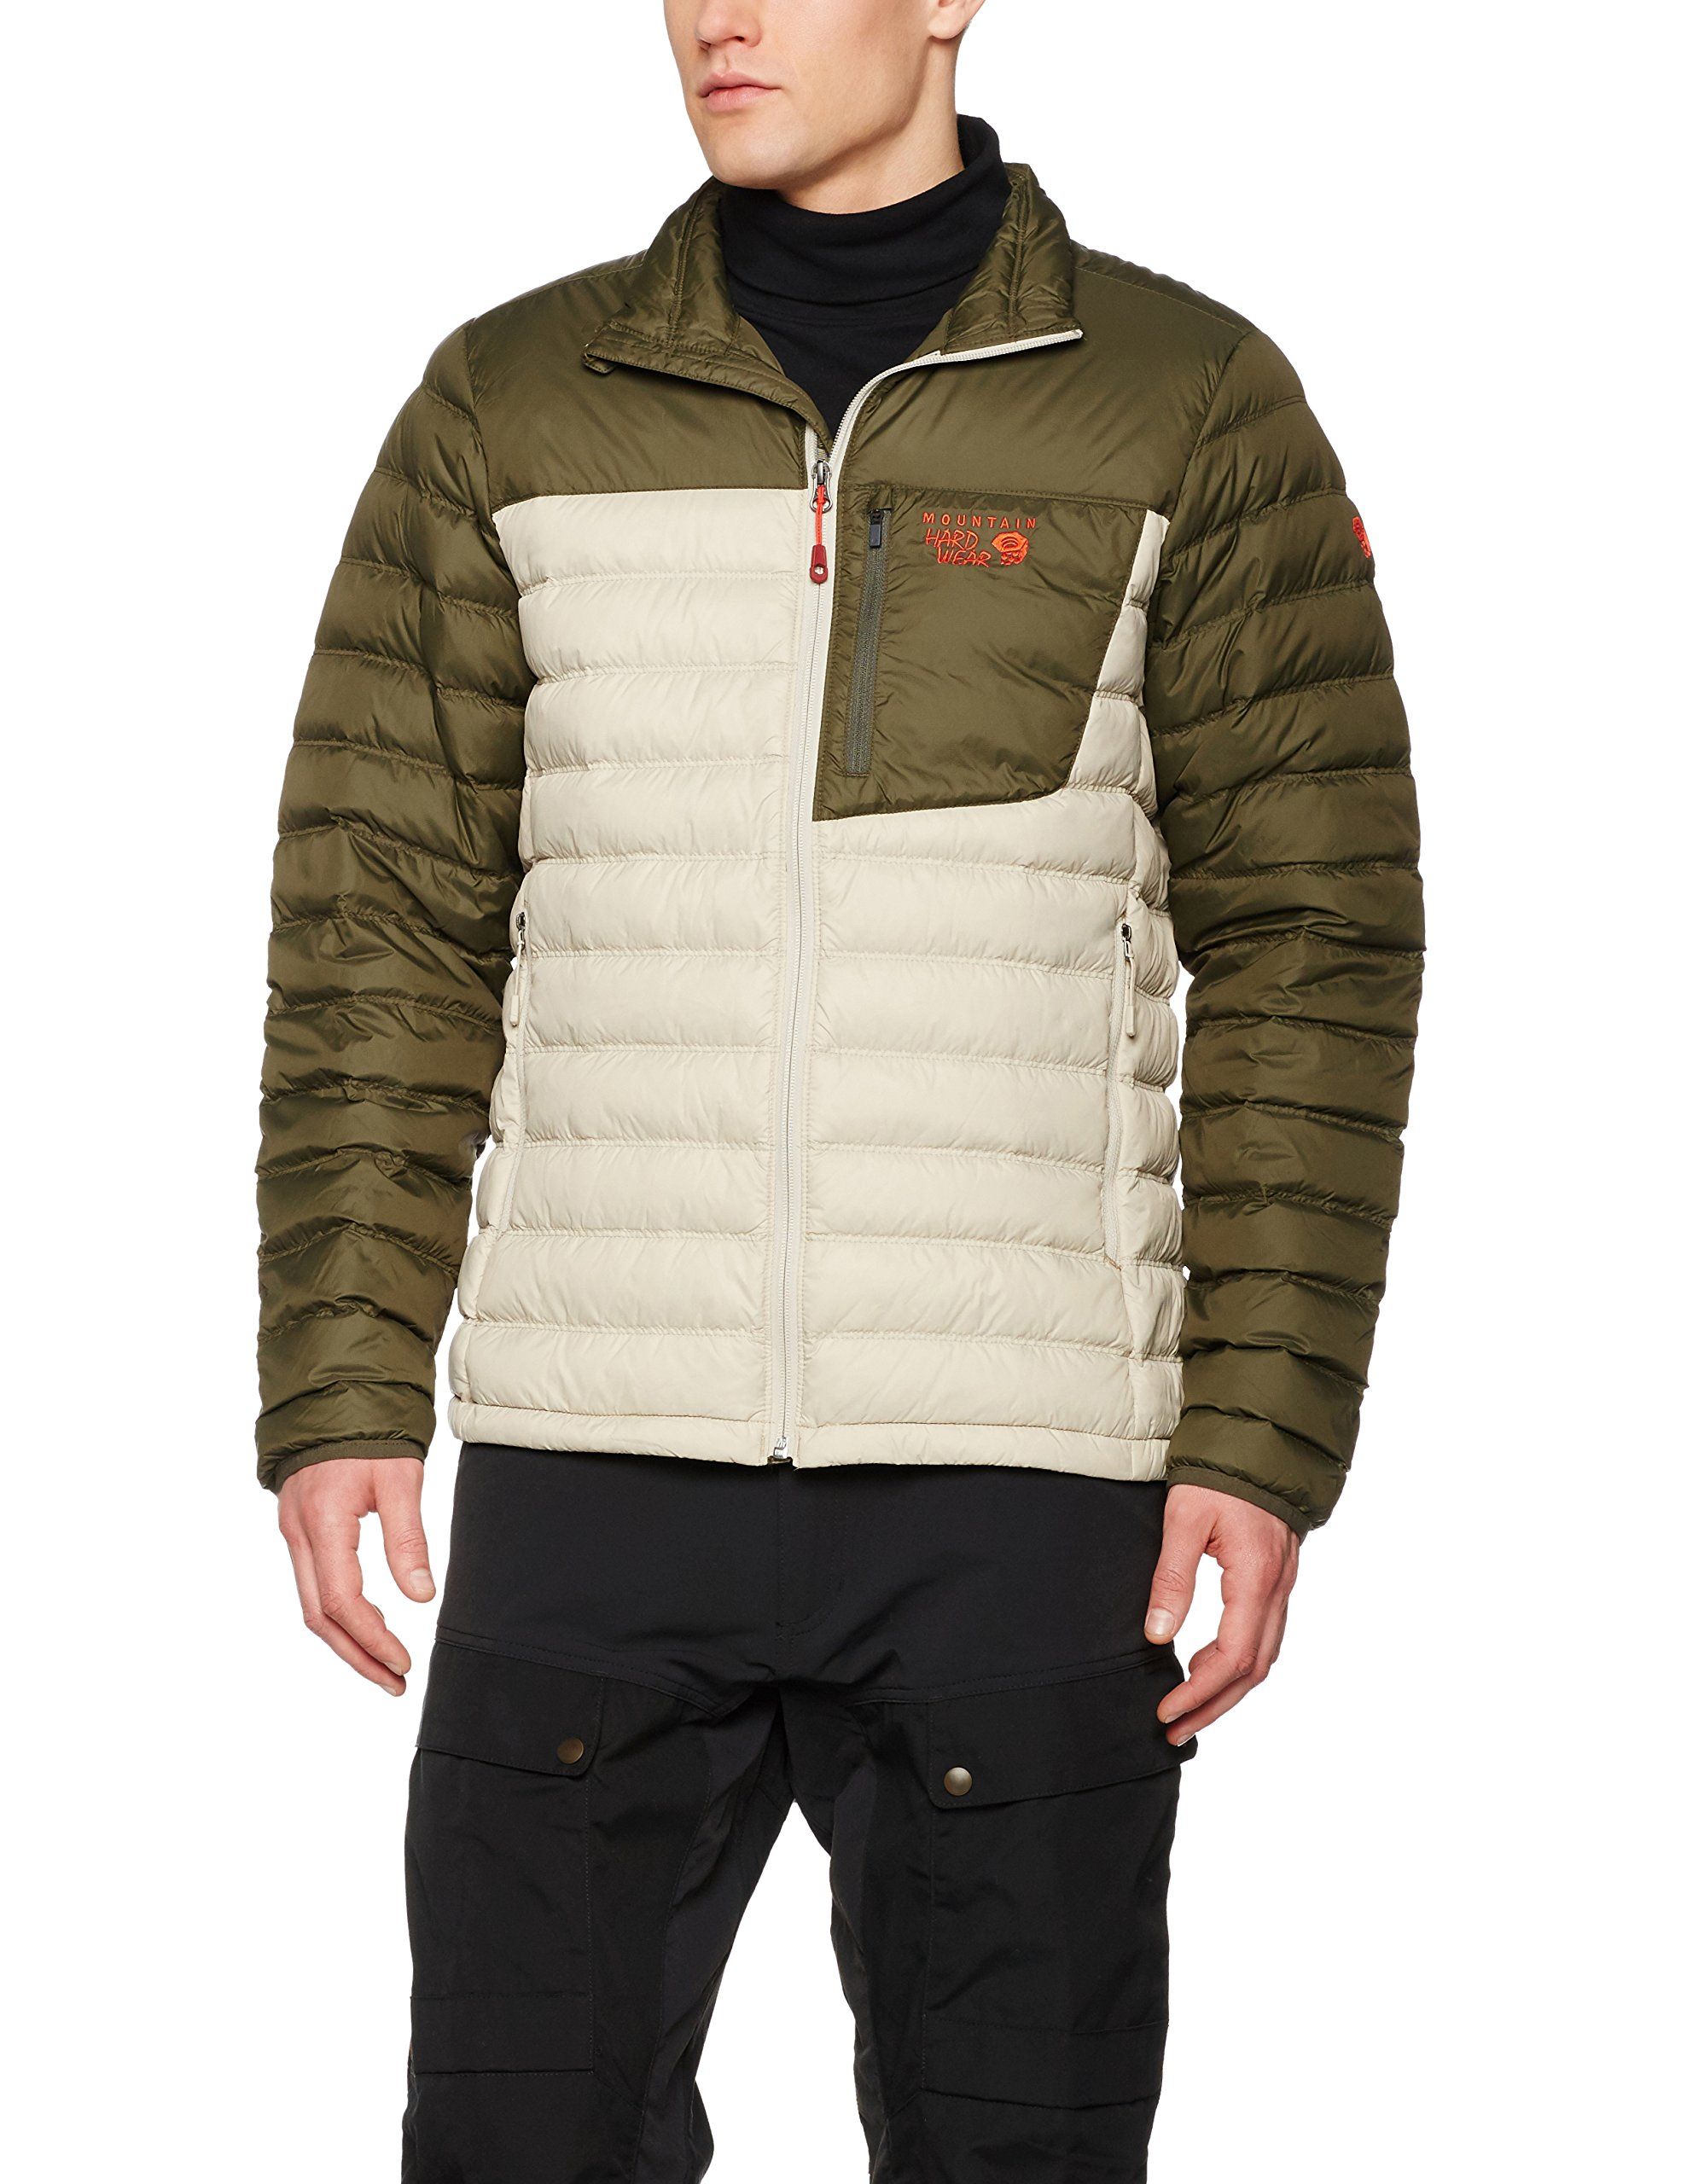 Mountain Hardwear Dynotherm Down Jacket - Mens Fossil / Peatmoss Small